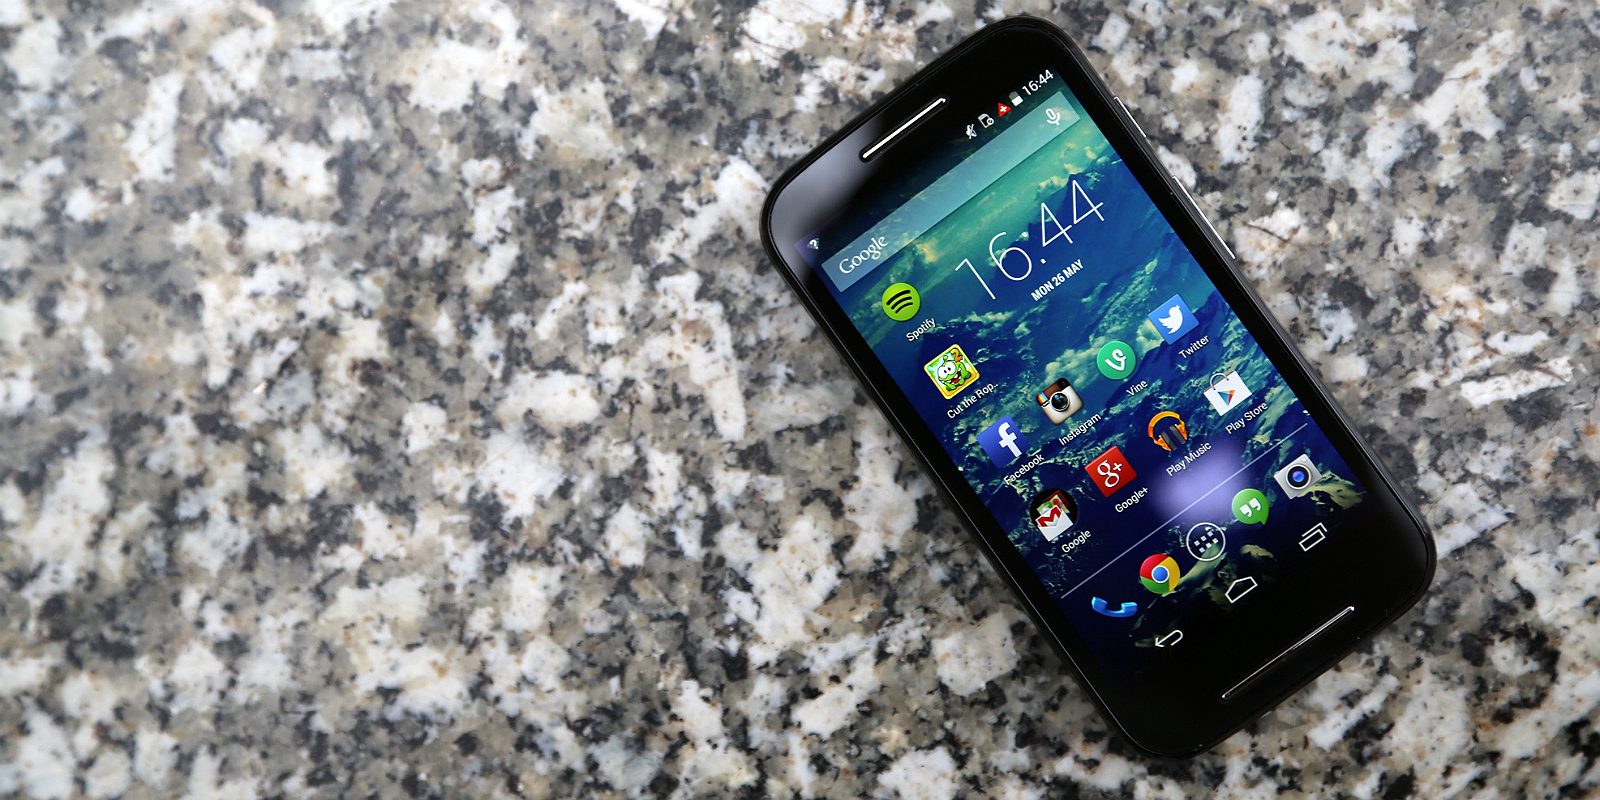 Moto E Review: A new Standard for Entry-Level Smartphones